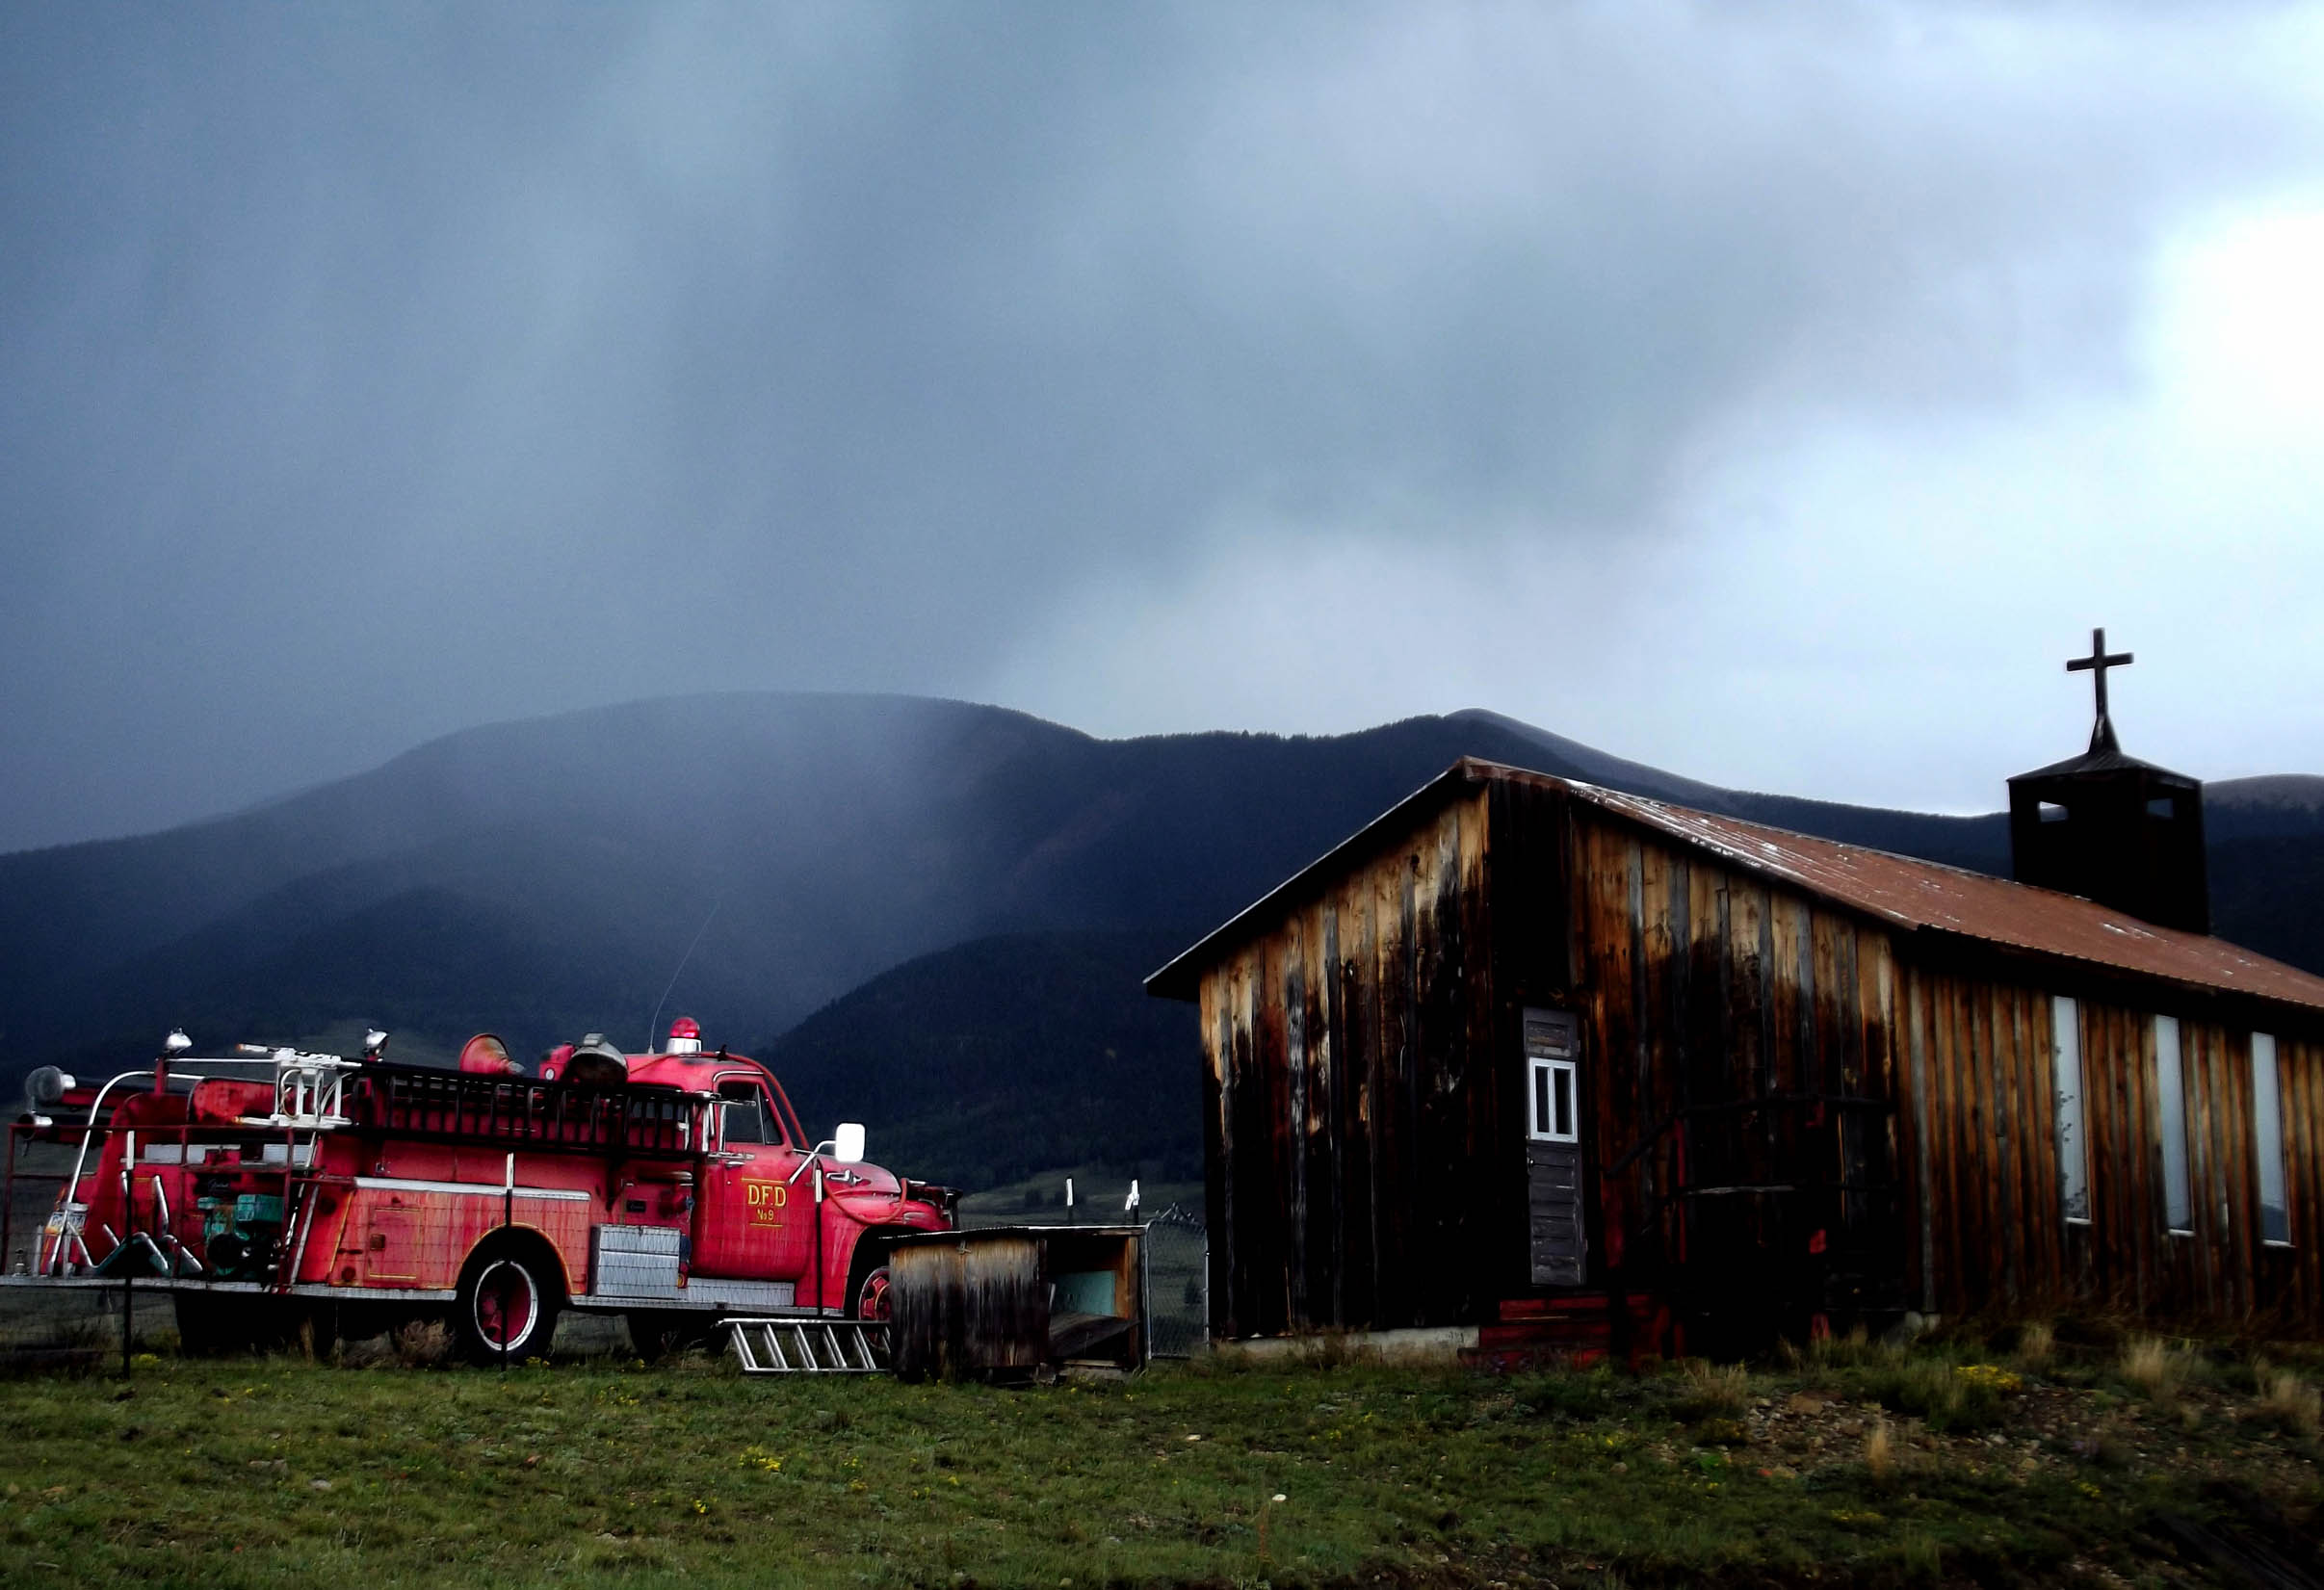 Red fire truck and small wooden church